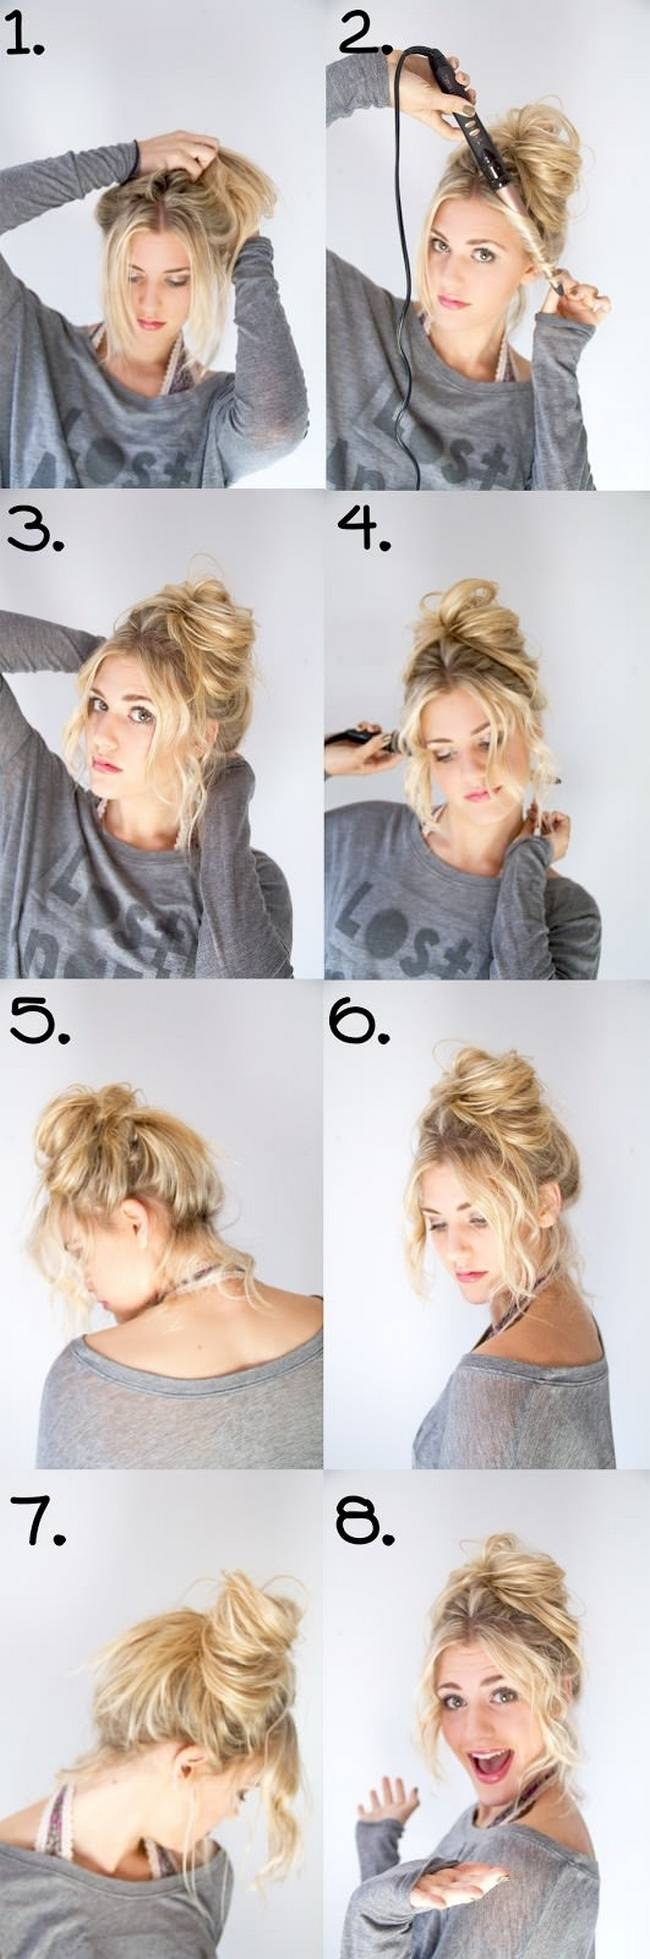 Diy messy updo pictures photos and images for facebook tumblr diy messy updo solutioingenieria Gallery